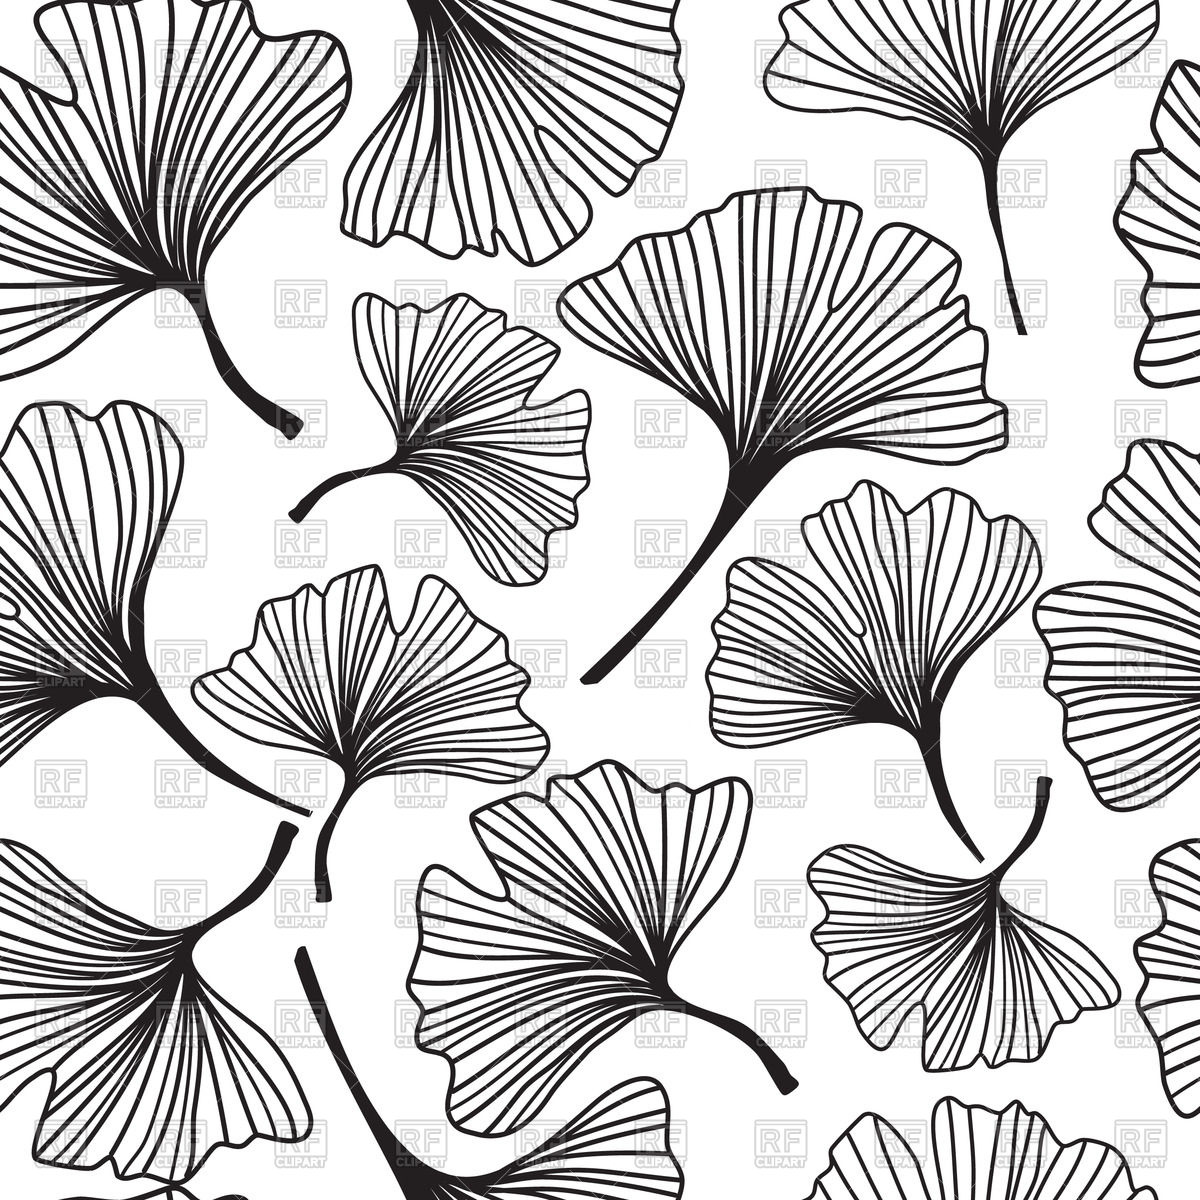 1200x1200 Seamless Floral Background With Sketch Of Ginkgo Biloba Royalty